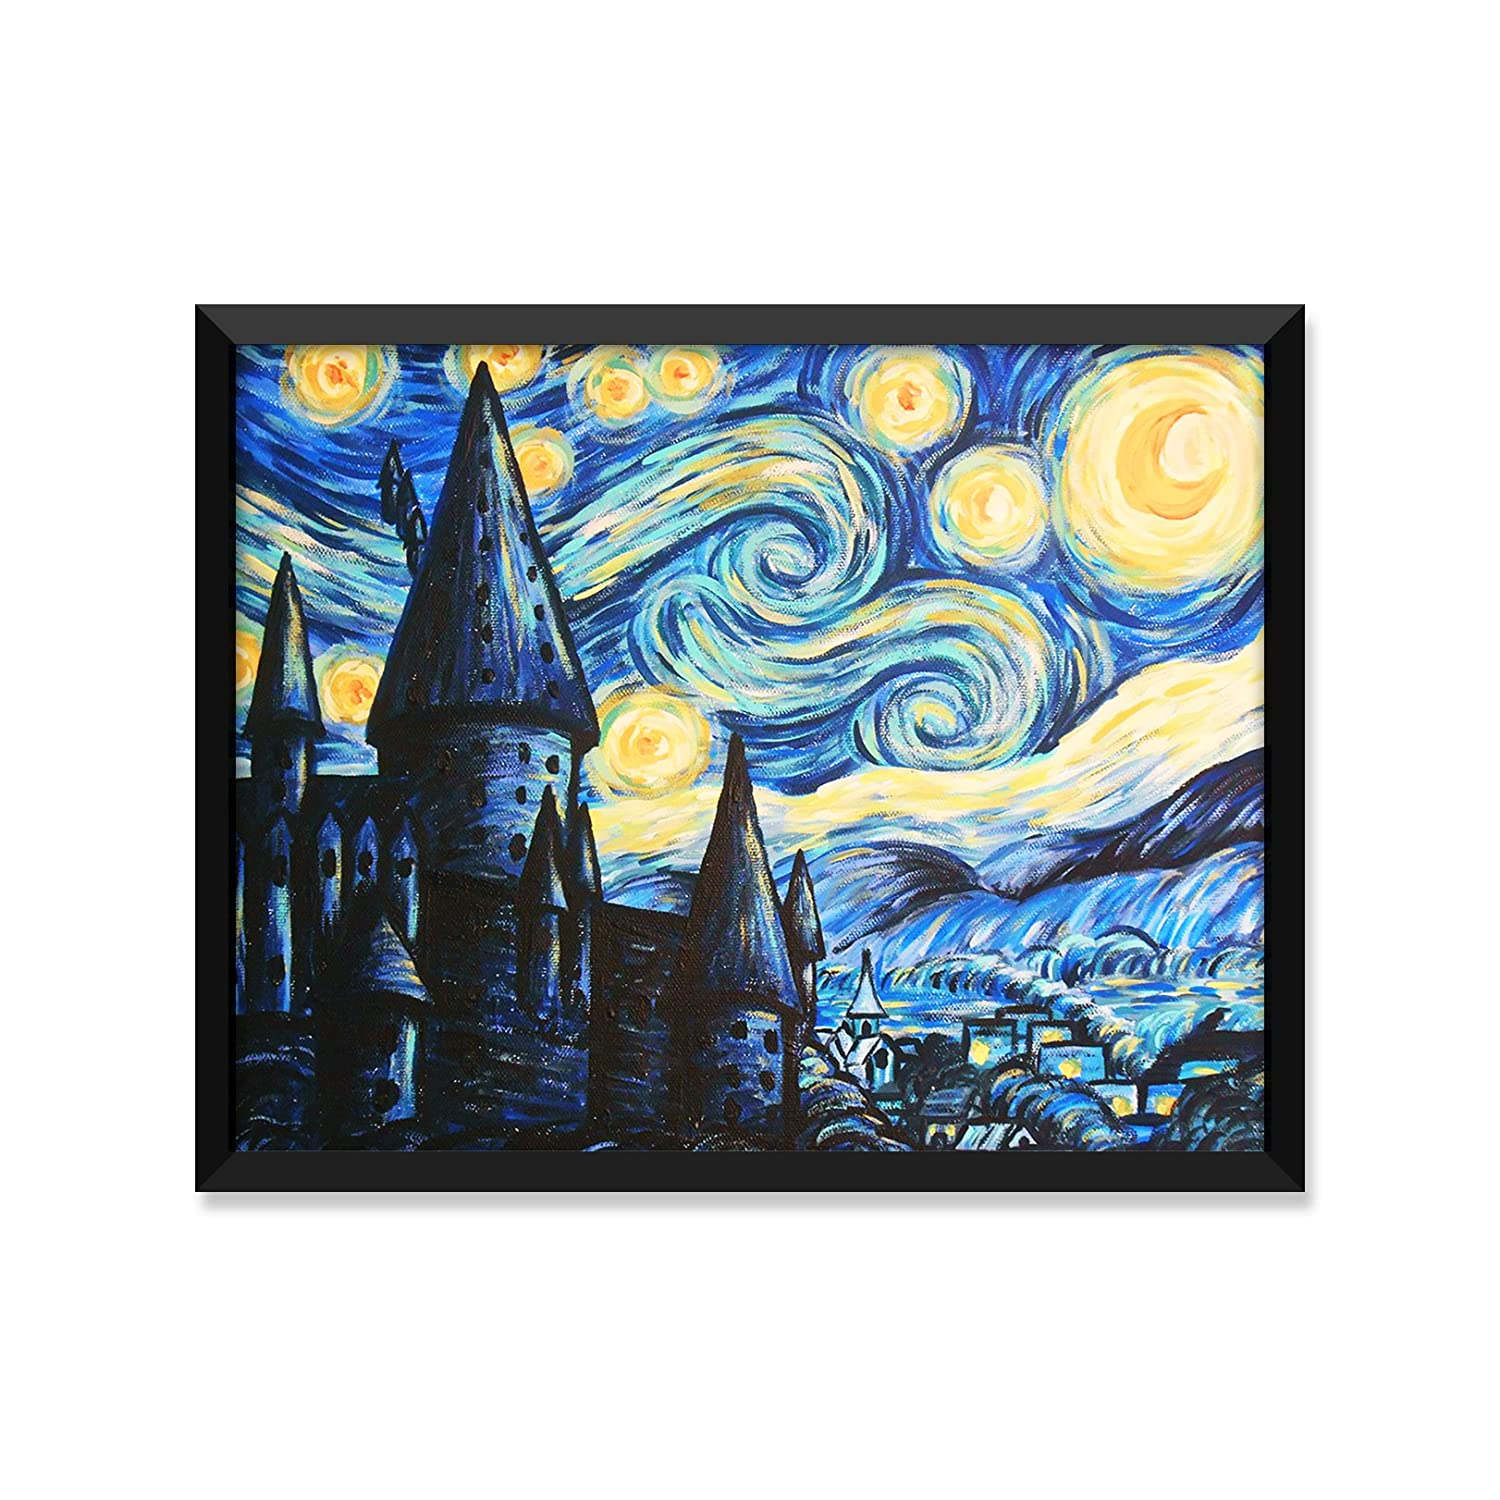 Amazon com hogwarts starry night painting harry potter poster minimalist poster home decor college dorm room decorations wall art posters prints